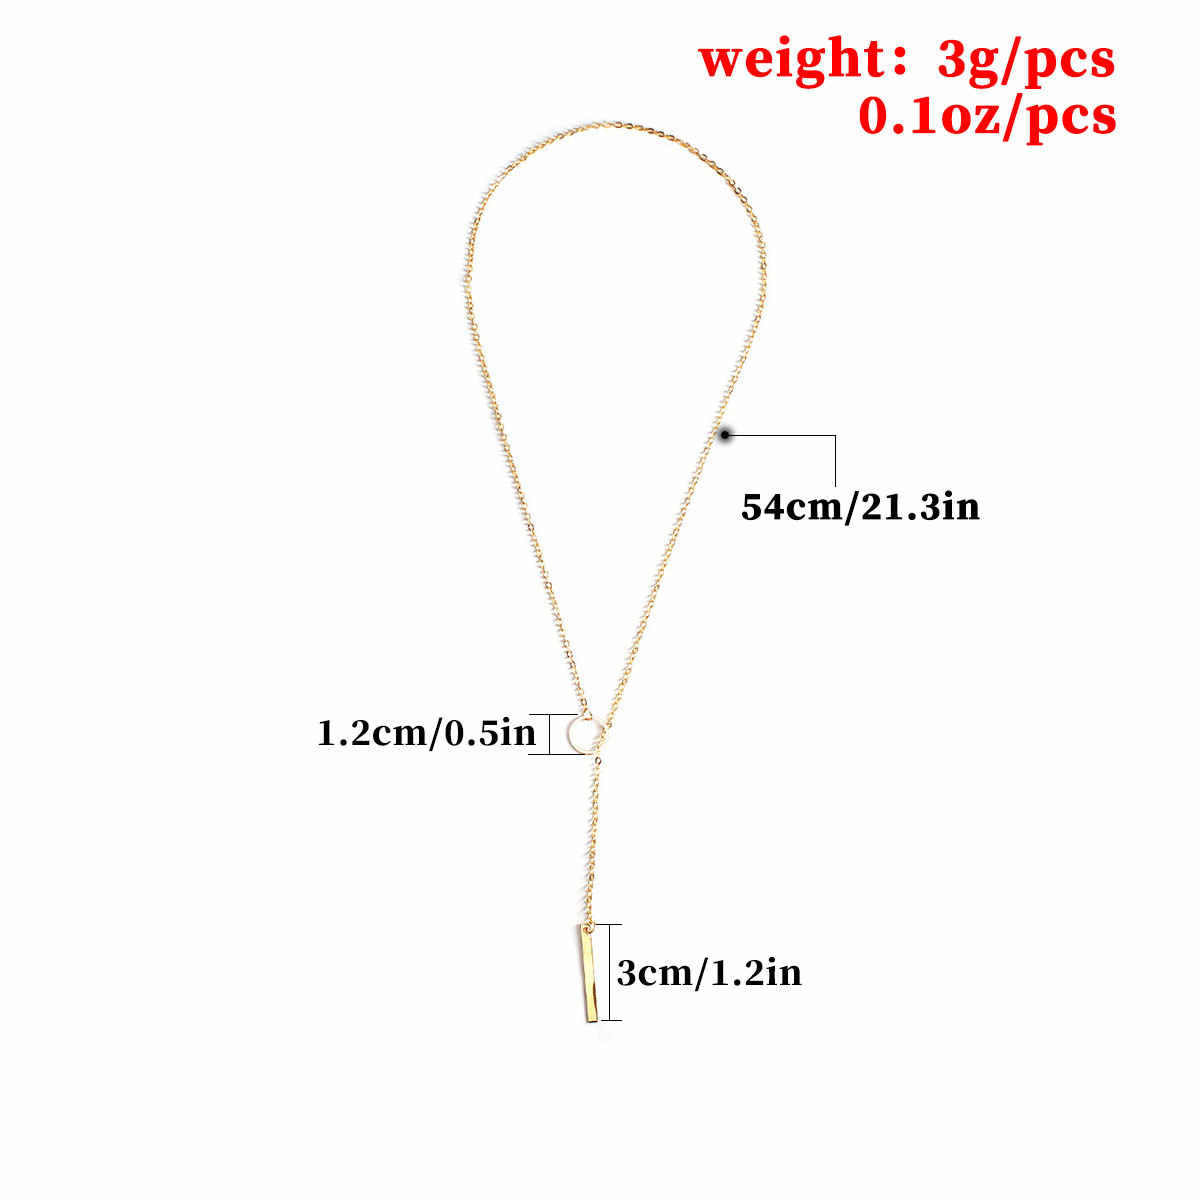 Fashion alloy women necklaces & pendants necklace choker 2019 color gold crystal pendant necklace for women gift wholesale